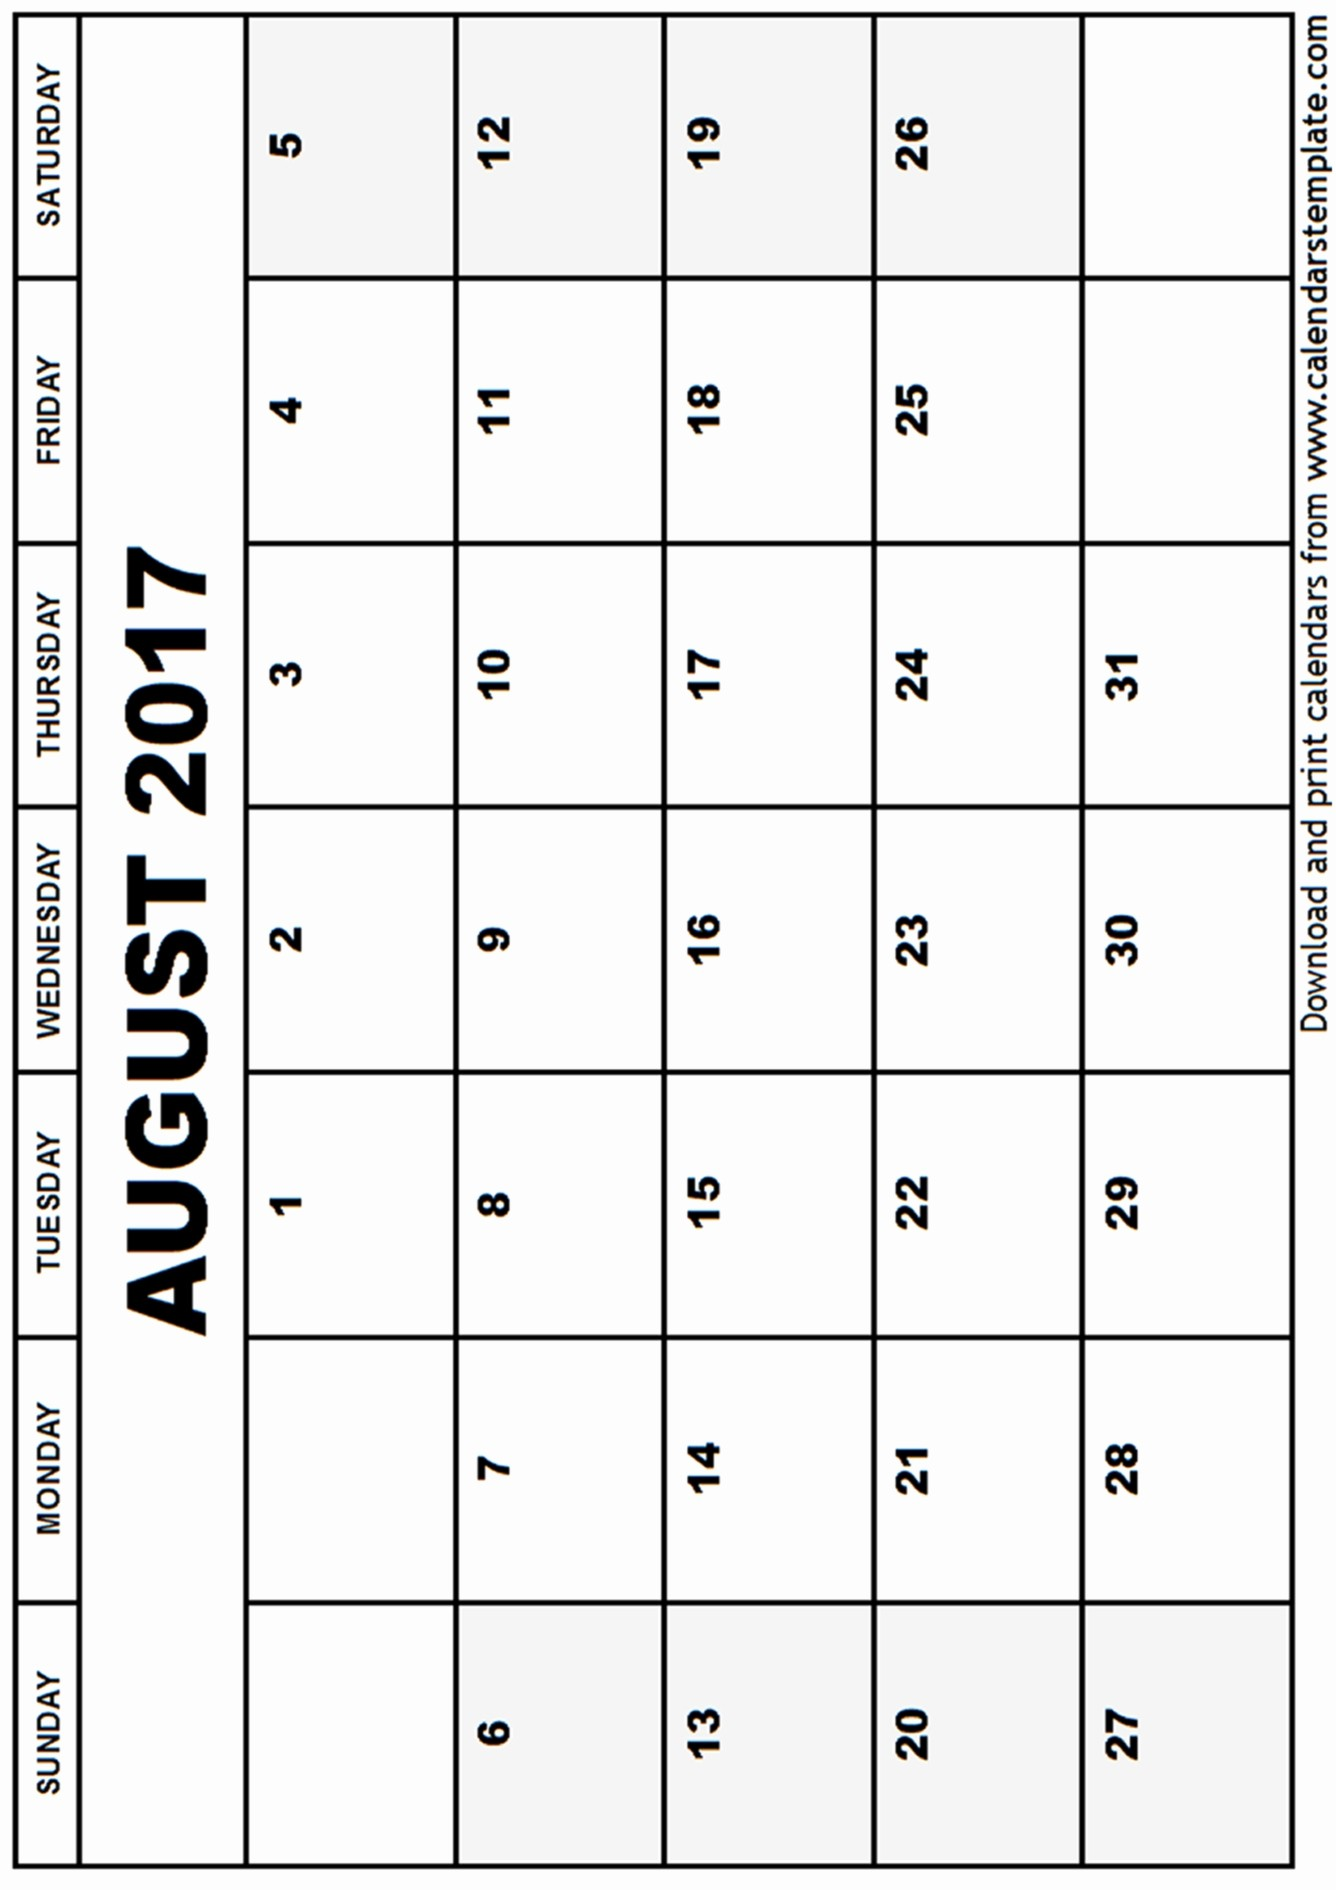 Blank Calendar Template August 2017 Lovely August 2017 Calendar Template